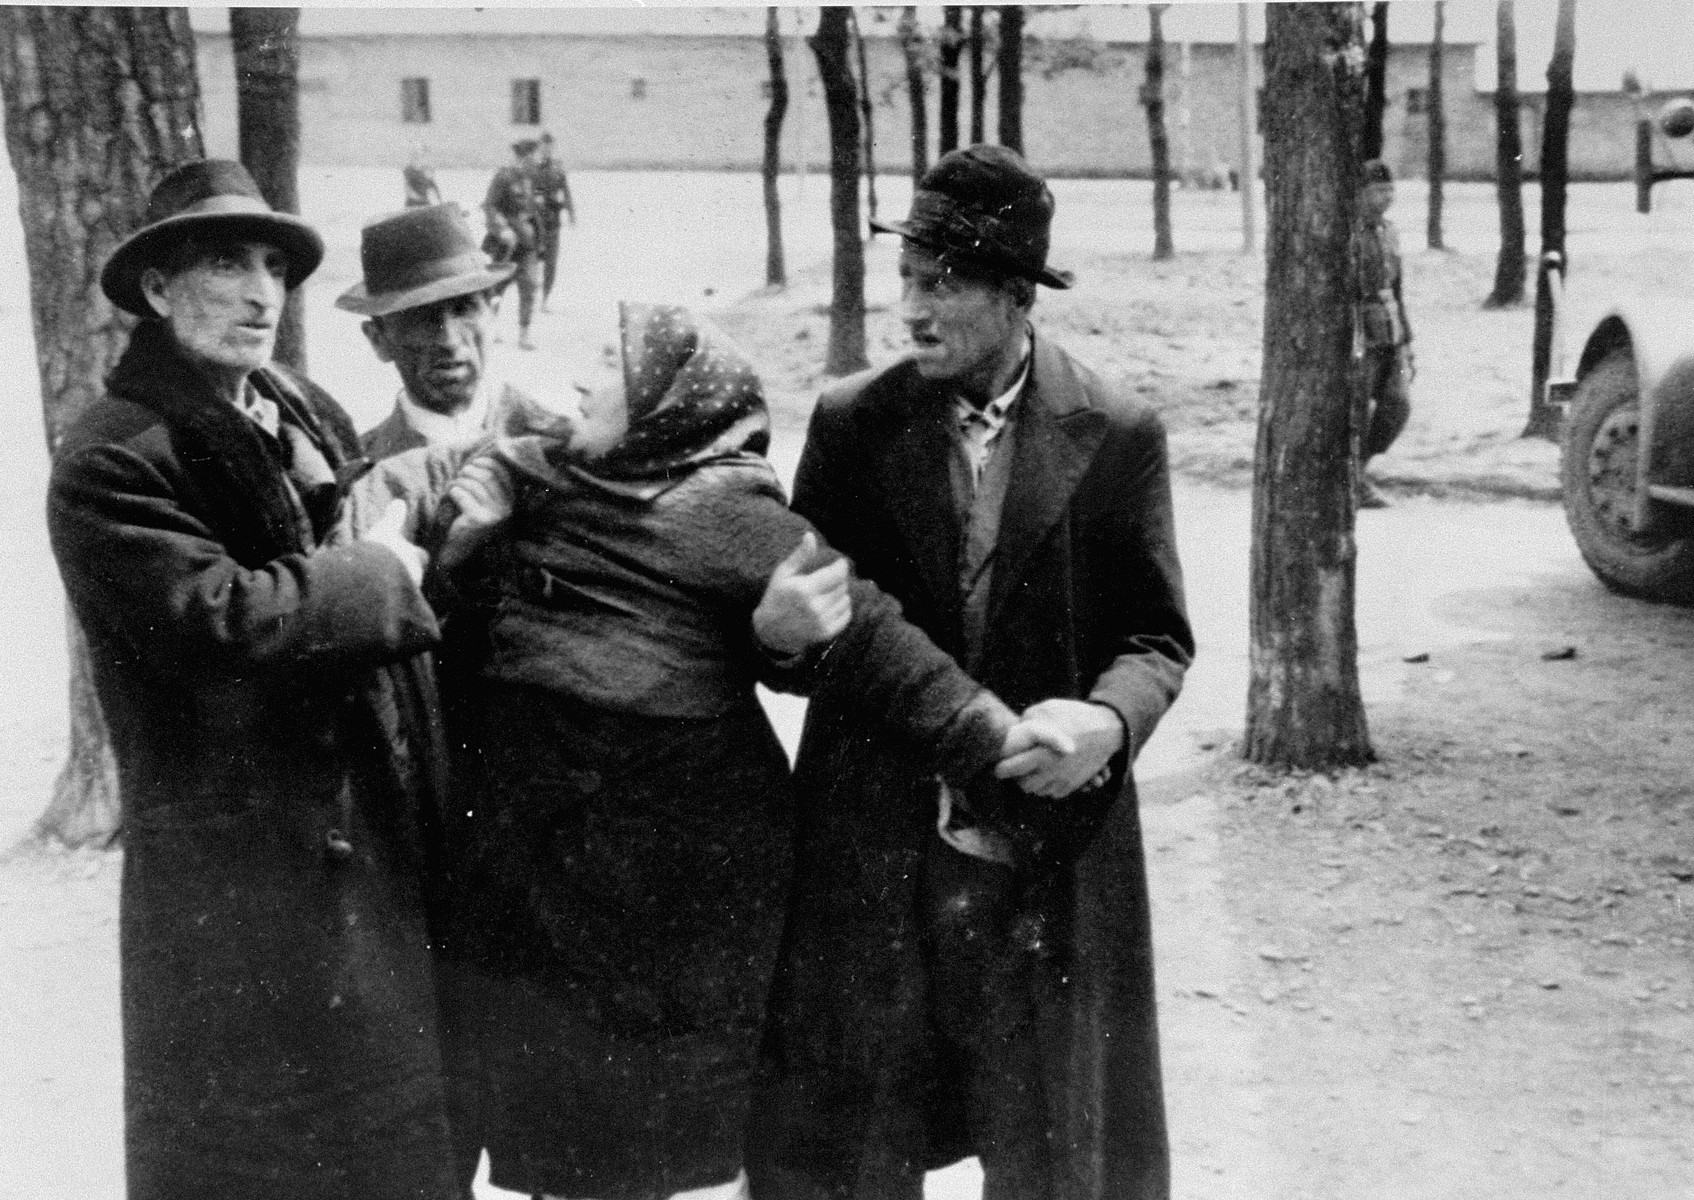 An elderly Jewish woman from Subcarpathian Rus is being held in place by three Jewish men [after having been separated from family members during the selection].